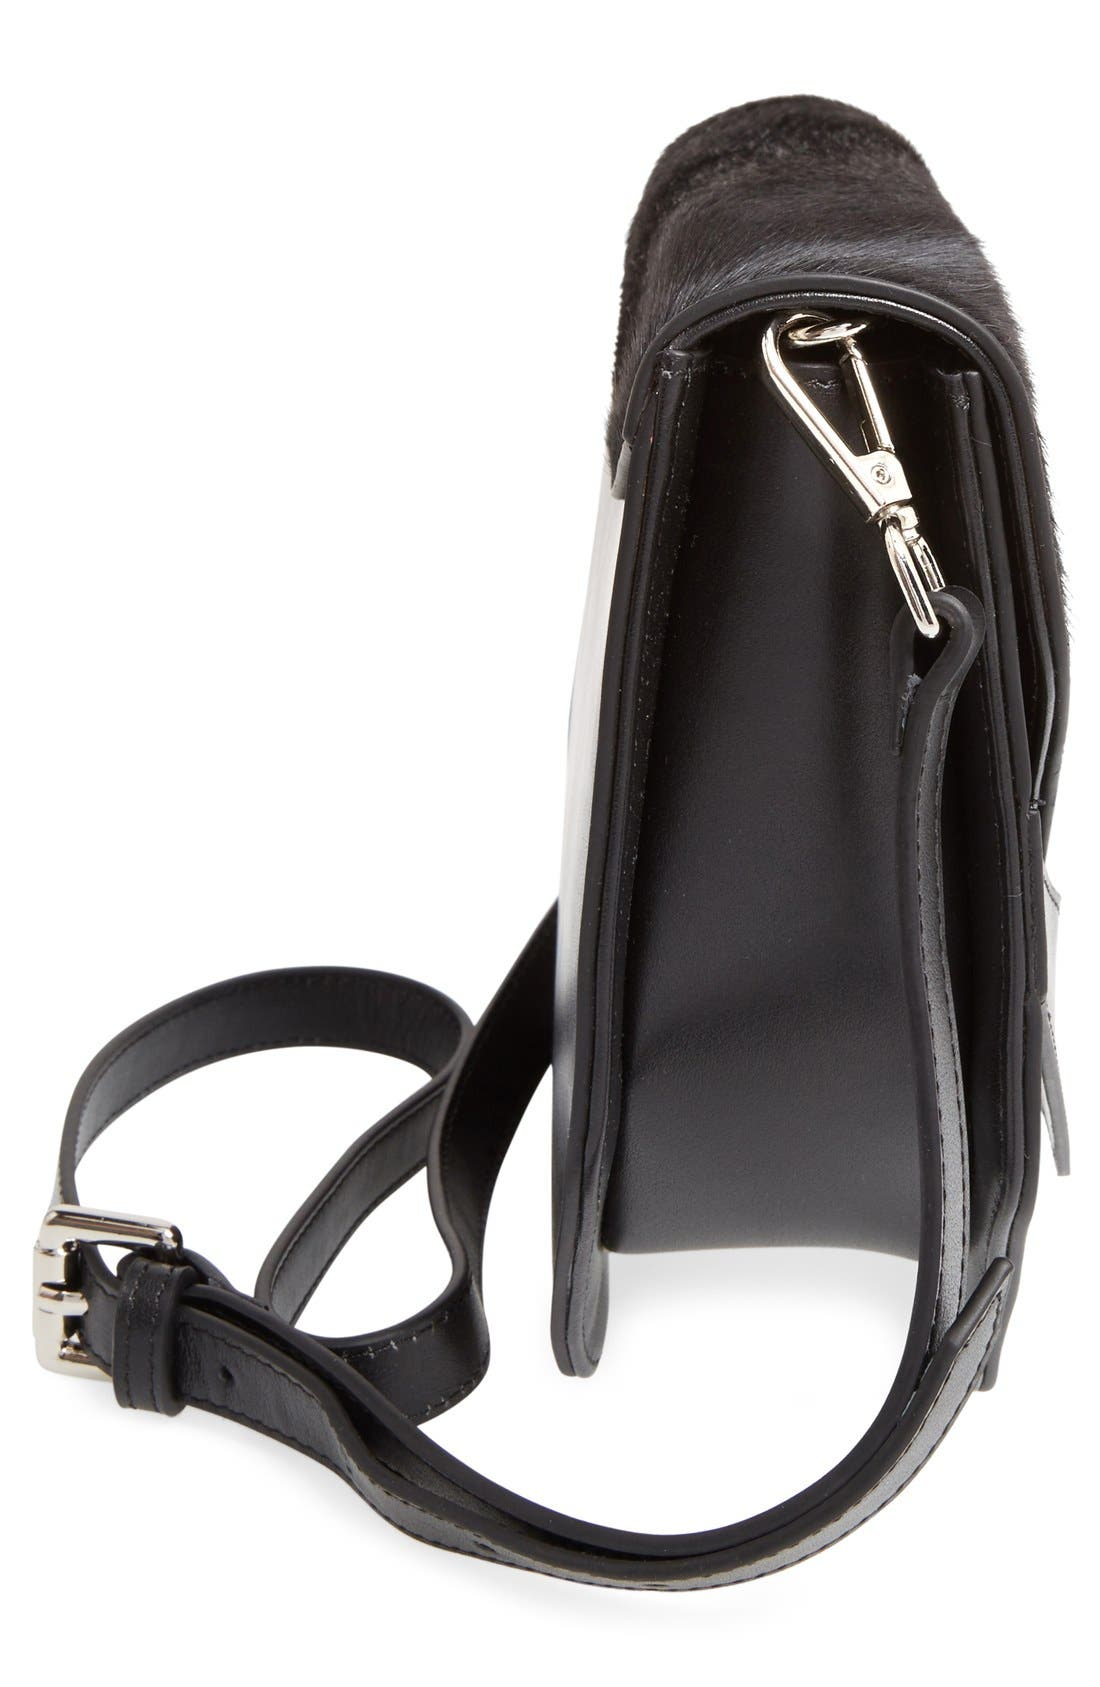 'The Eclipse' Crossbody Bag,                             Alternate thumbnail 5, color,                             001